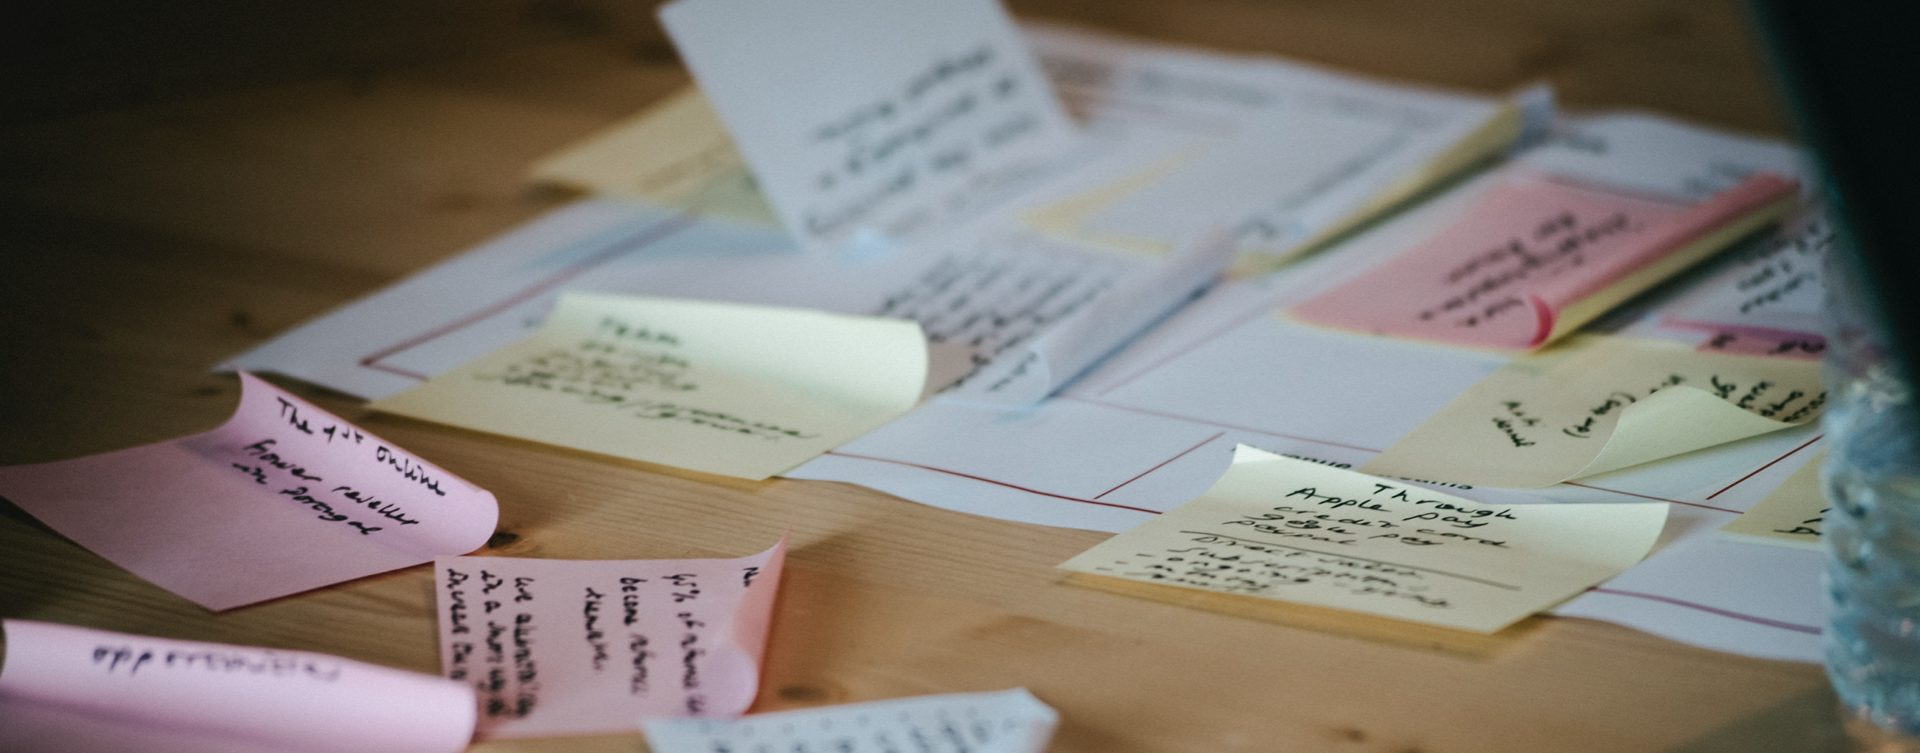 Startups developing their MVP with a validated idea: September 2020